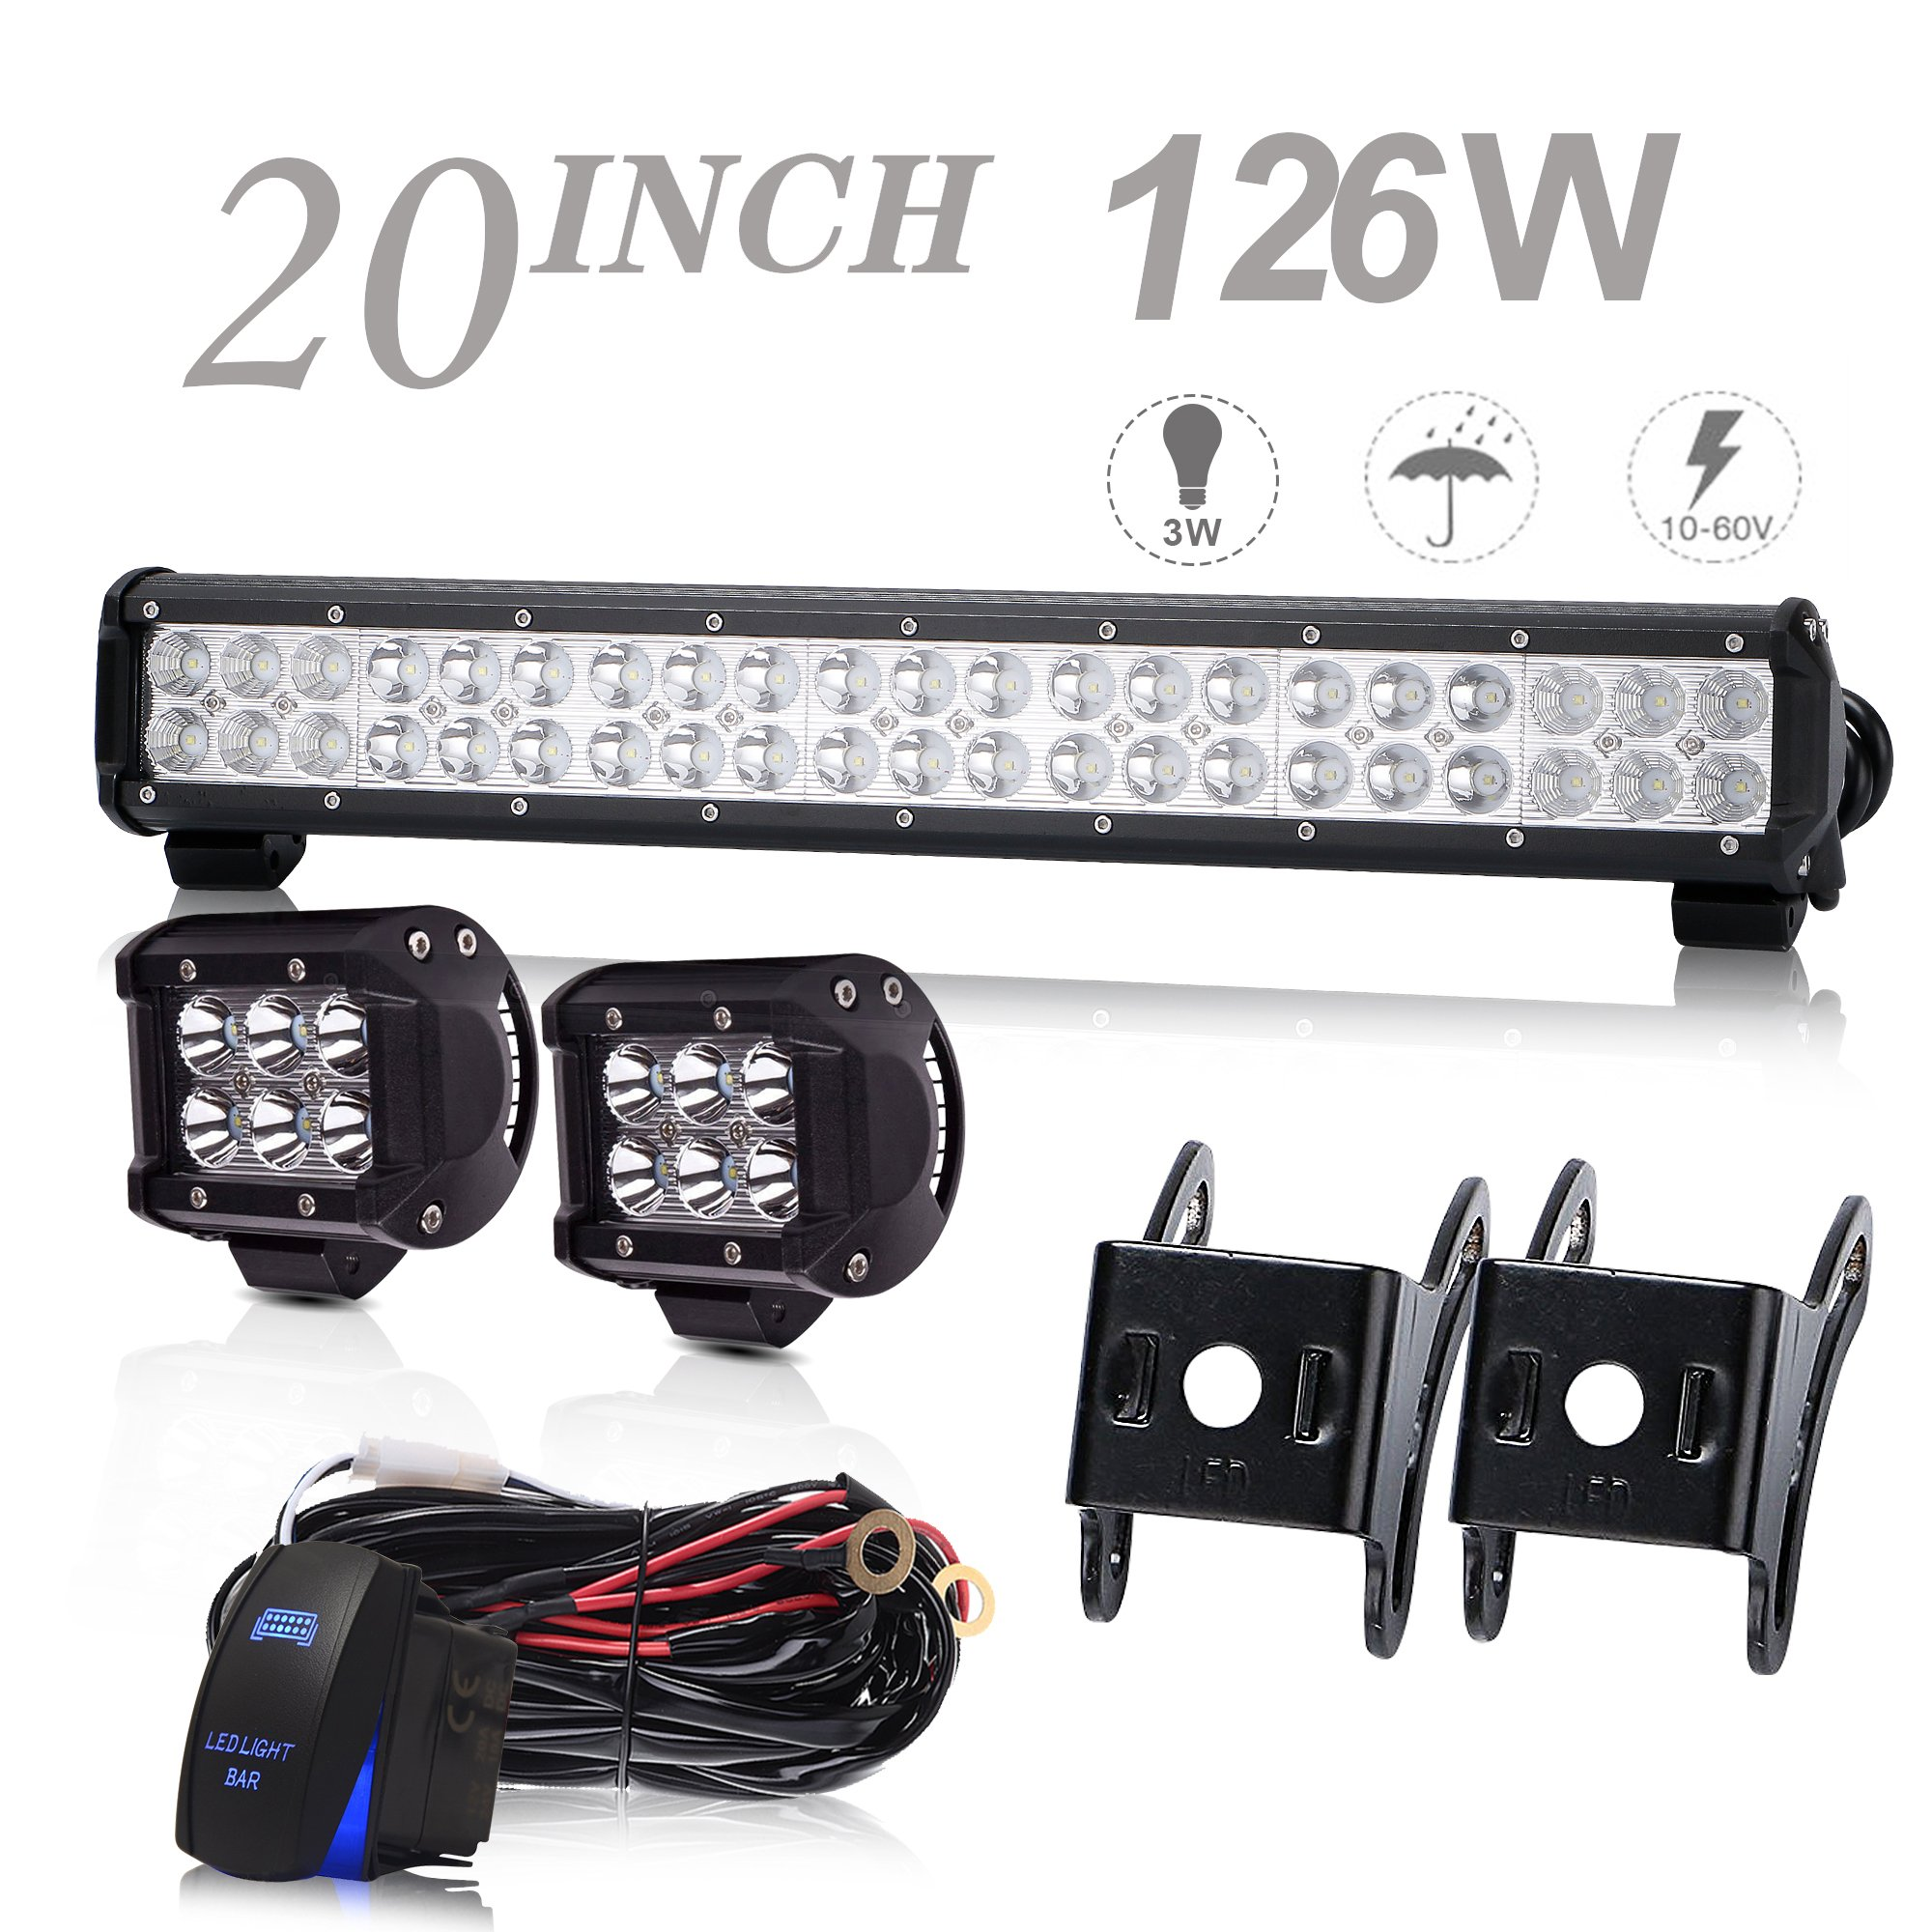 Uni Filter Dot Approved 20inch Led Light Bar 126w Off Road Driving Polaris Atv Wiring Harness Lights Work Spot Flood Fog Lamp With For Rzr Toyota